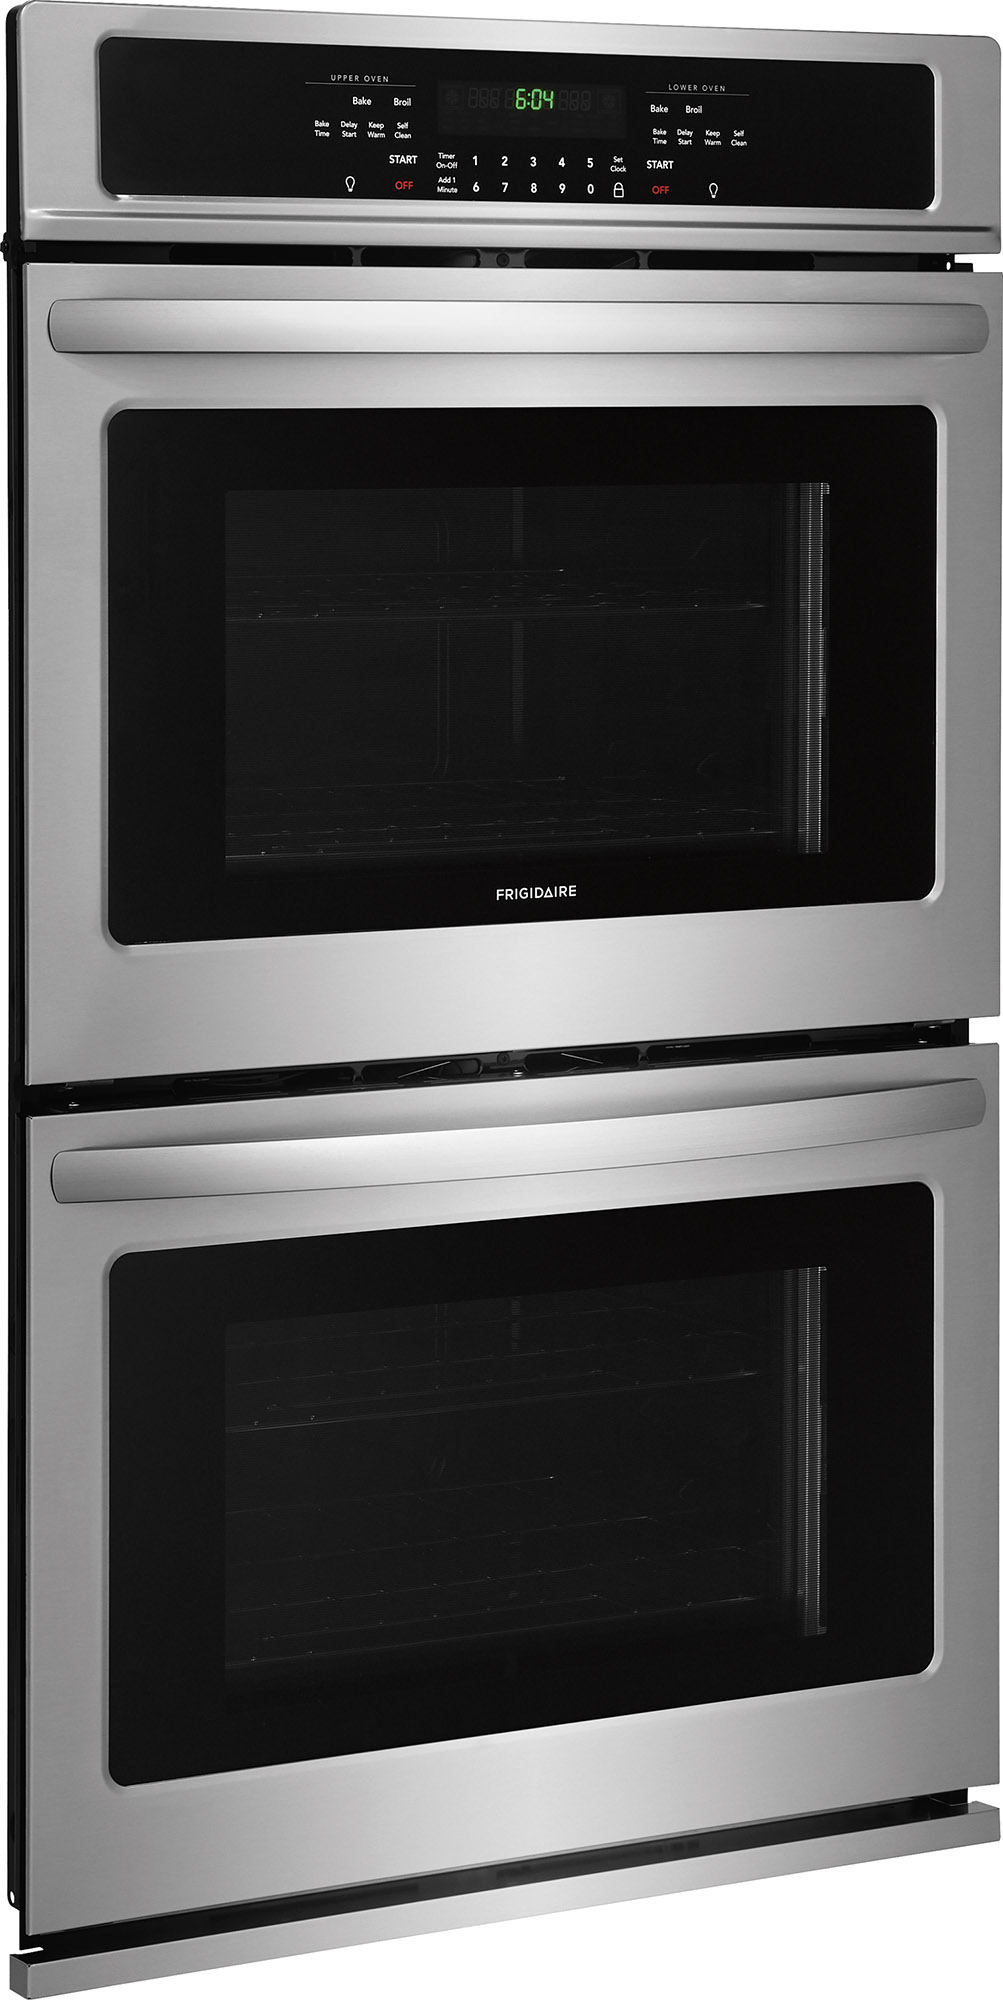 Frigidaire 27 Electric Double Oven Built In Ffet2726t Home 1450 Microwave Schematic Image Touch Control Panel Circuit Stainless Steel Ffet2726ts